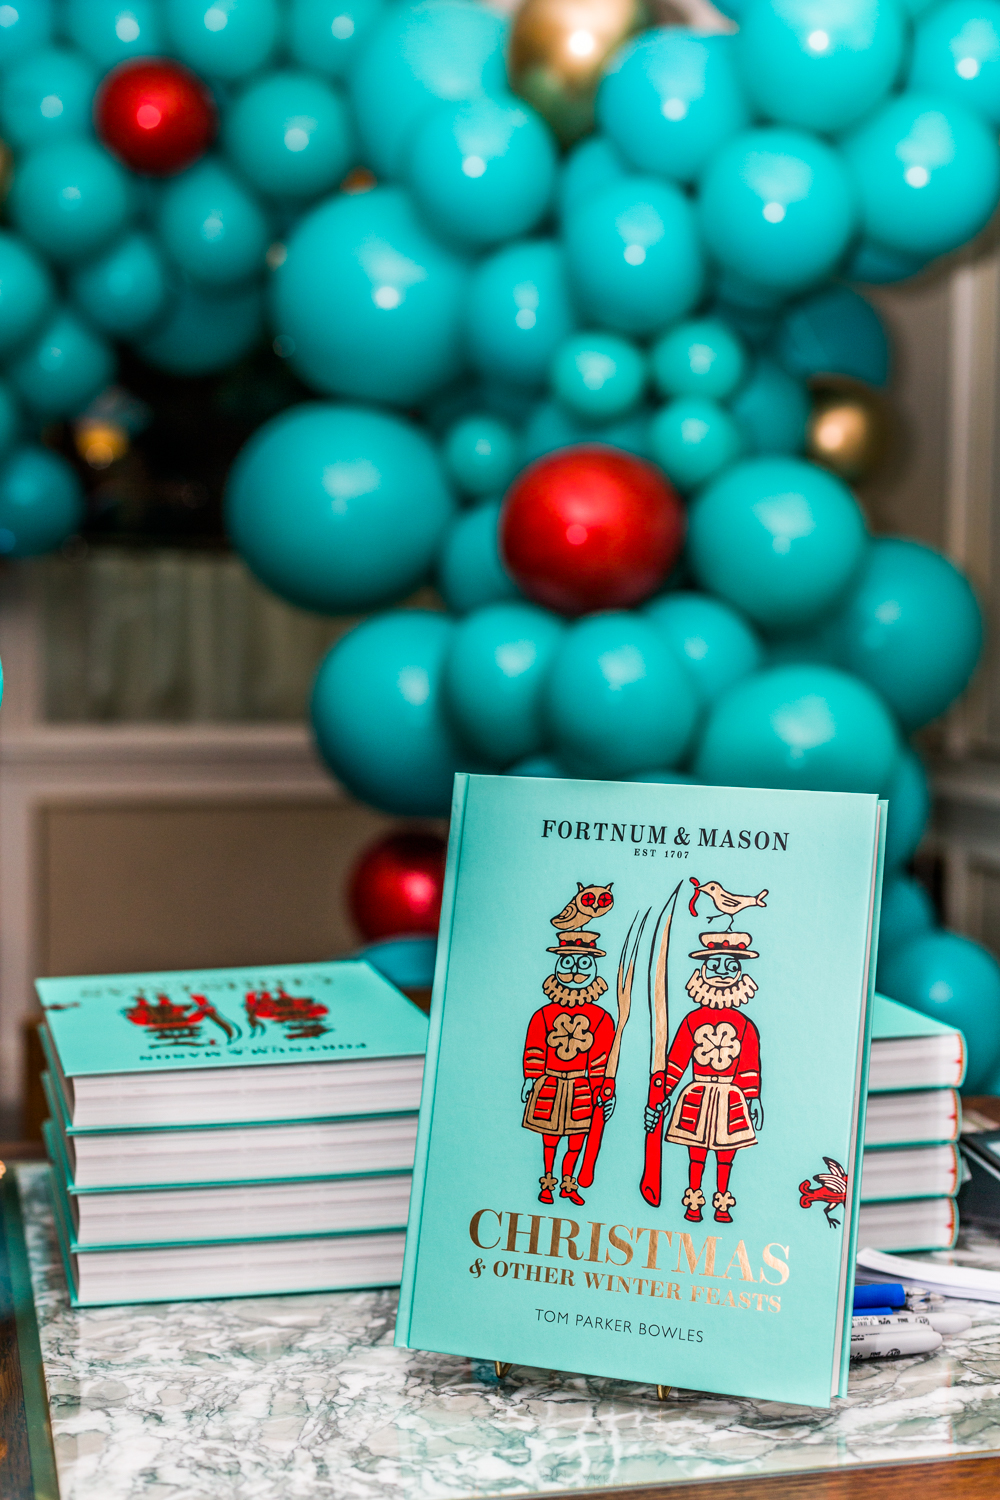 Christmas & Other Winter Feasts Book Launch